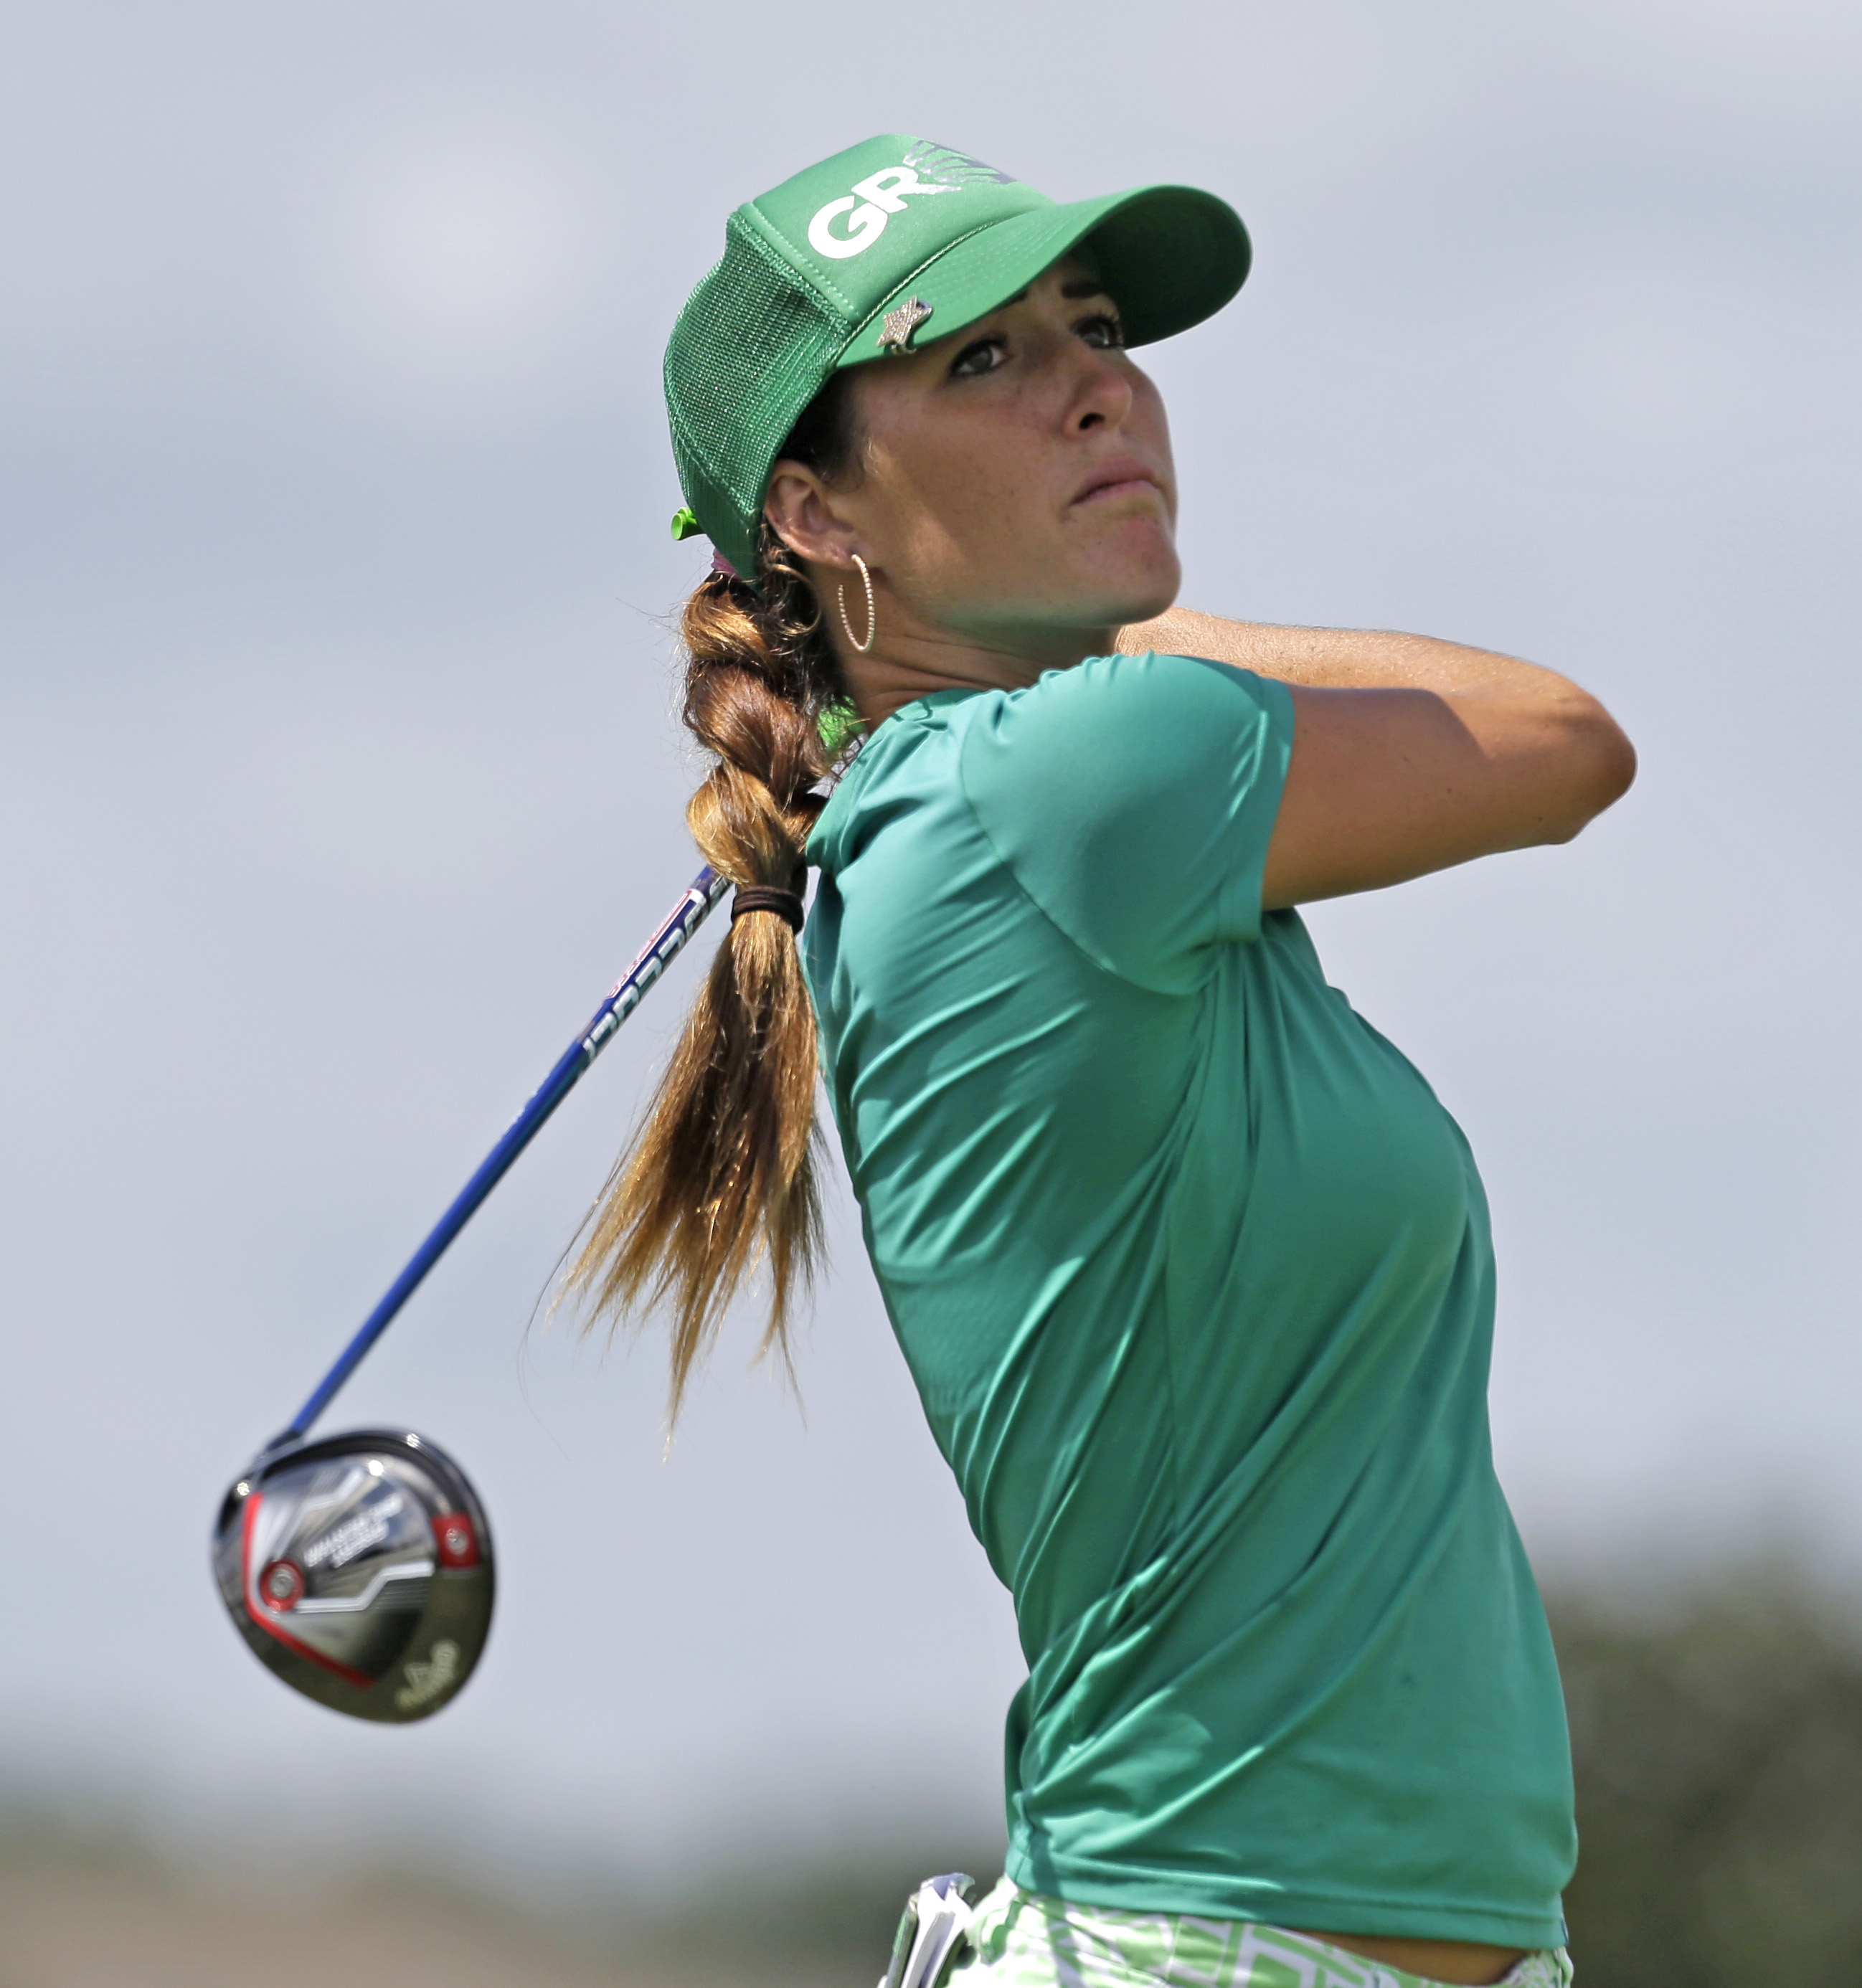 Jaye Marie Green tees off on the third hole during the final round of the Yokohama Tire LPGA Classic golf tournament, Sunday, Aug. 30, 2015, in Prattville, Ala. (AP Photo/Butch Dill)